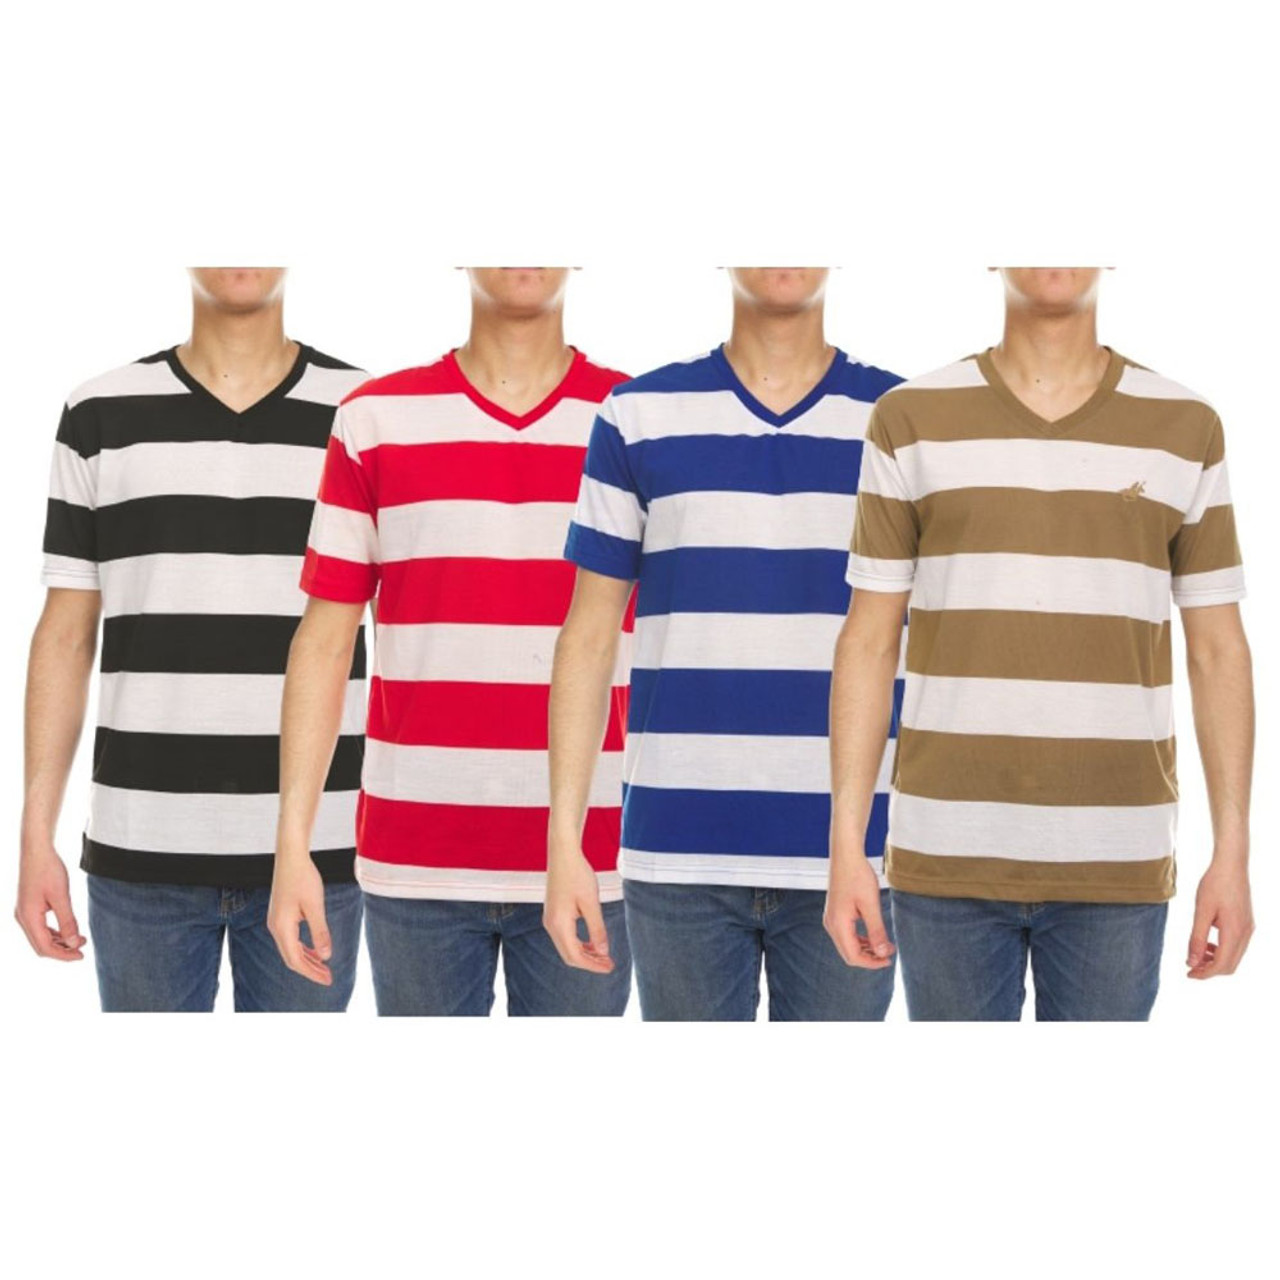 4-Pack Men's Striped Short Sleeve T- Shirts